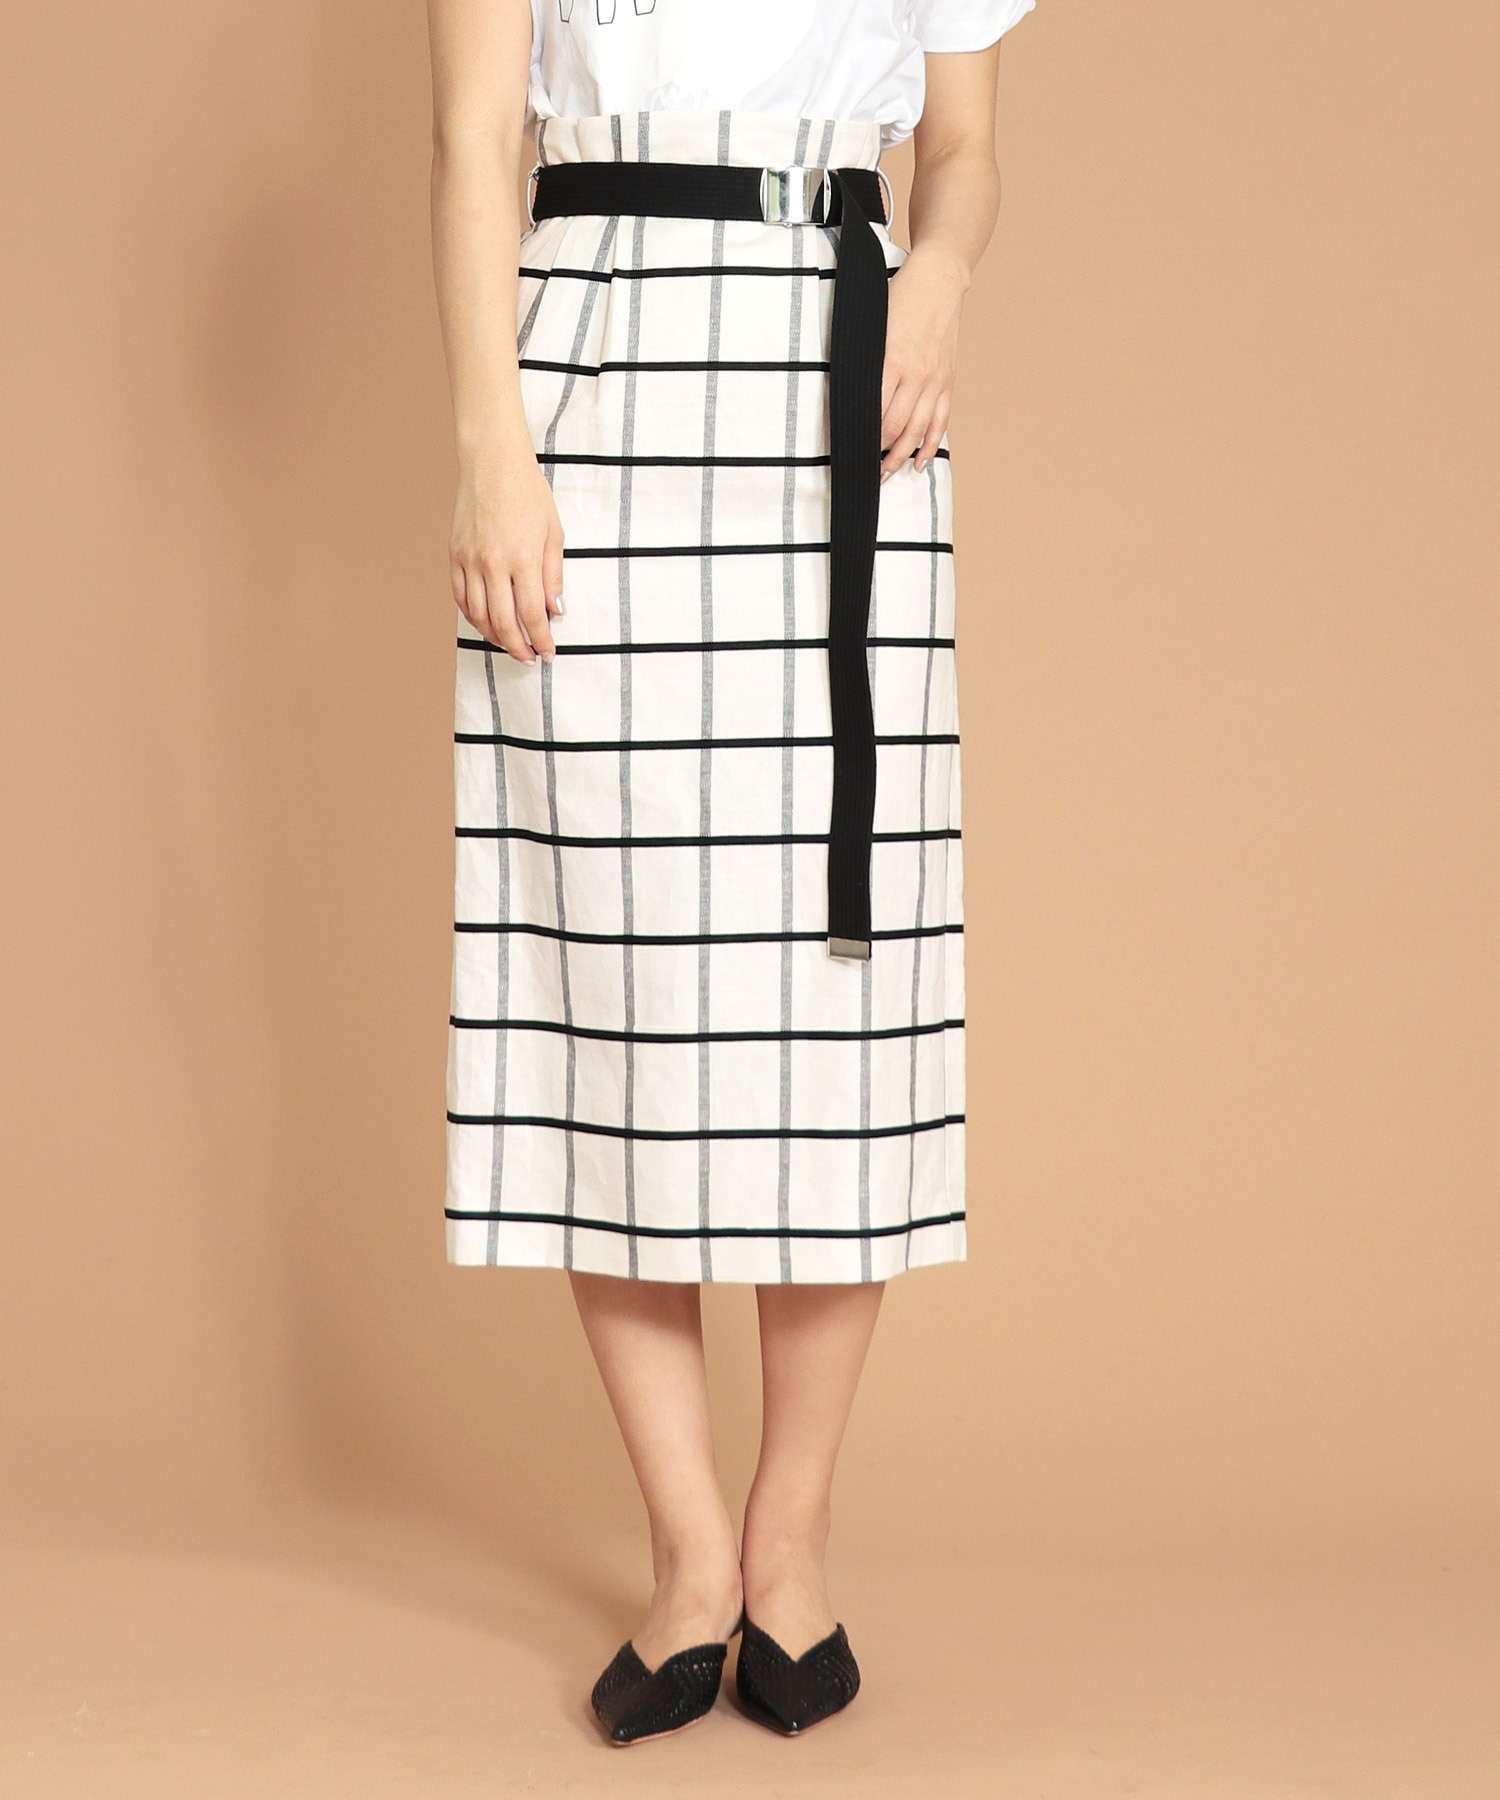 sruare check GI belt skirt